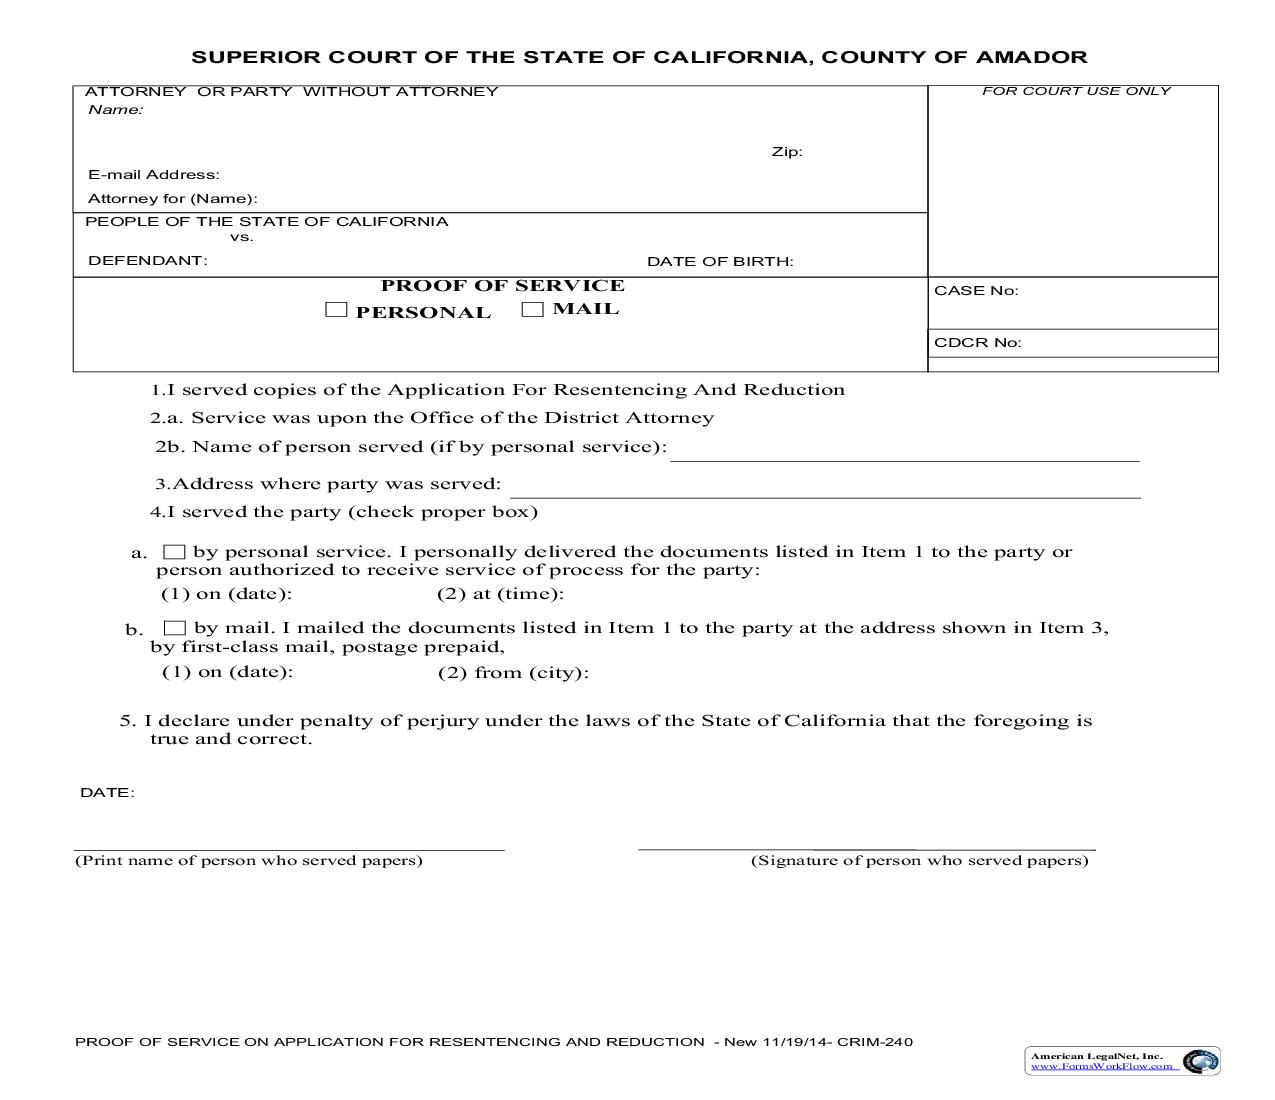 Proof Of Service On Application For Resentencing And Reduction {CRIM-240}   Pdf Fpdf Doc Docx   California